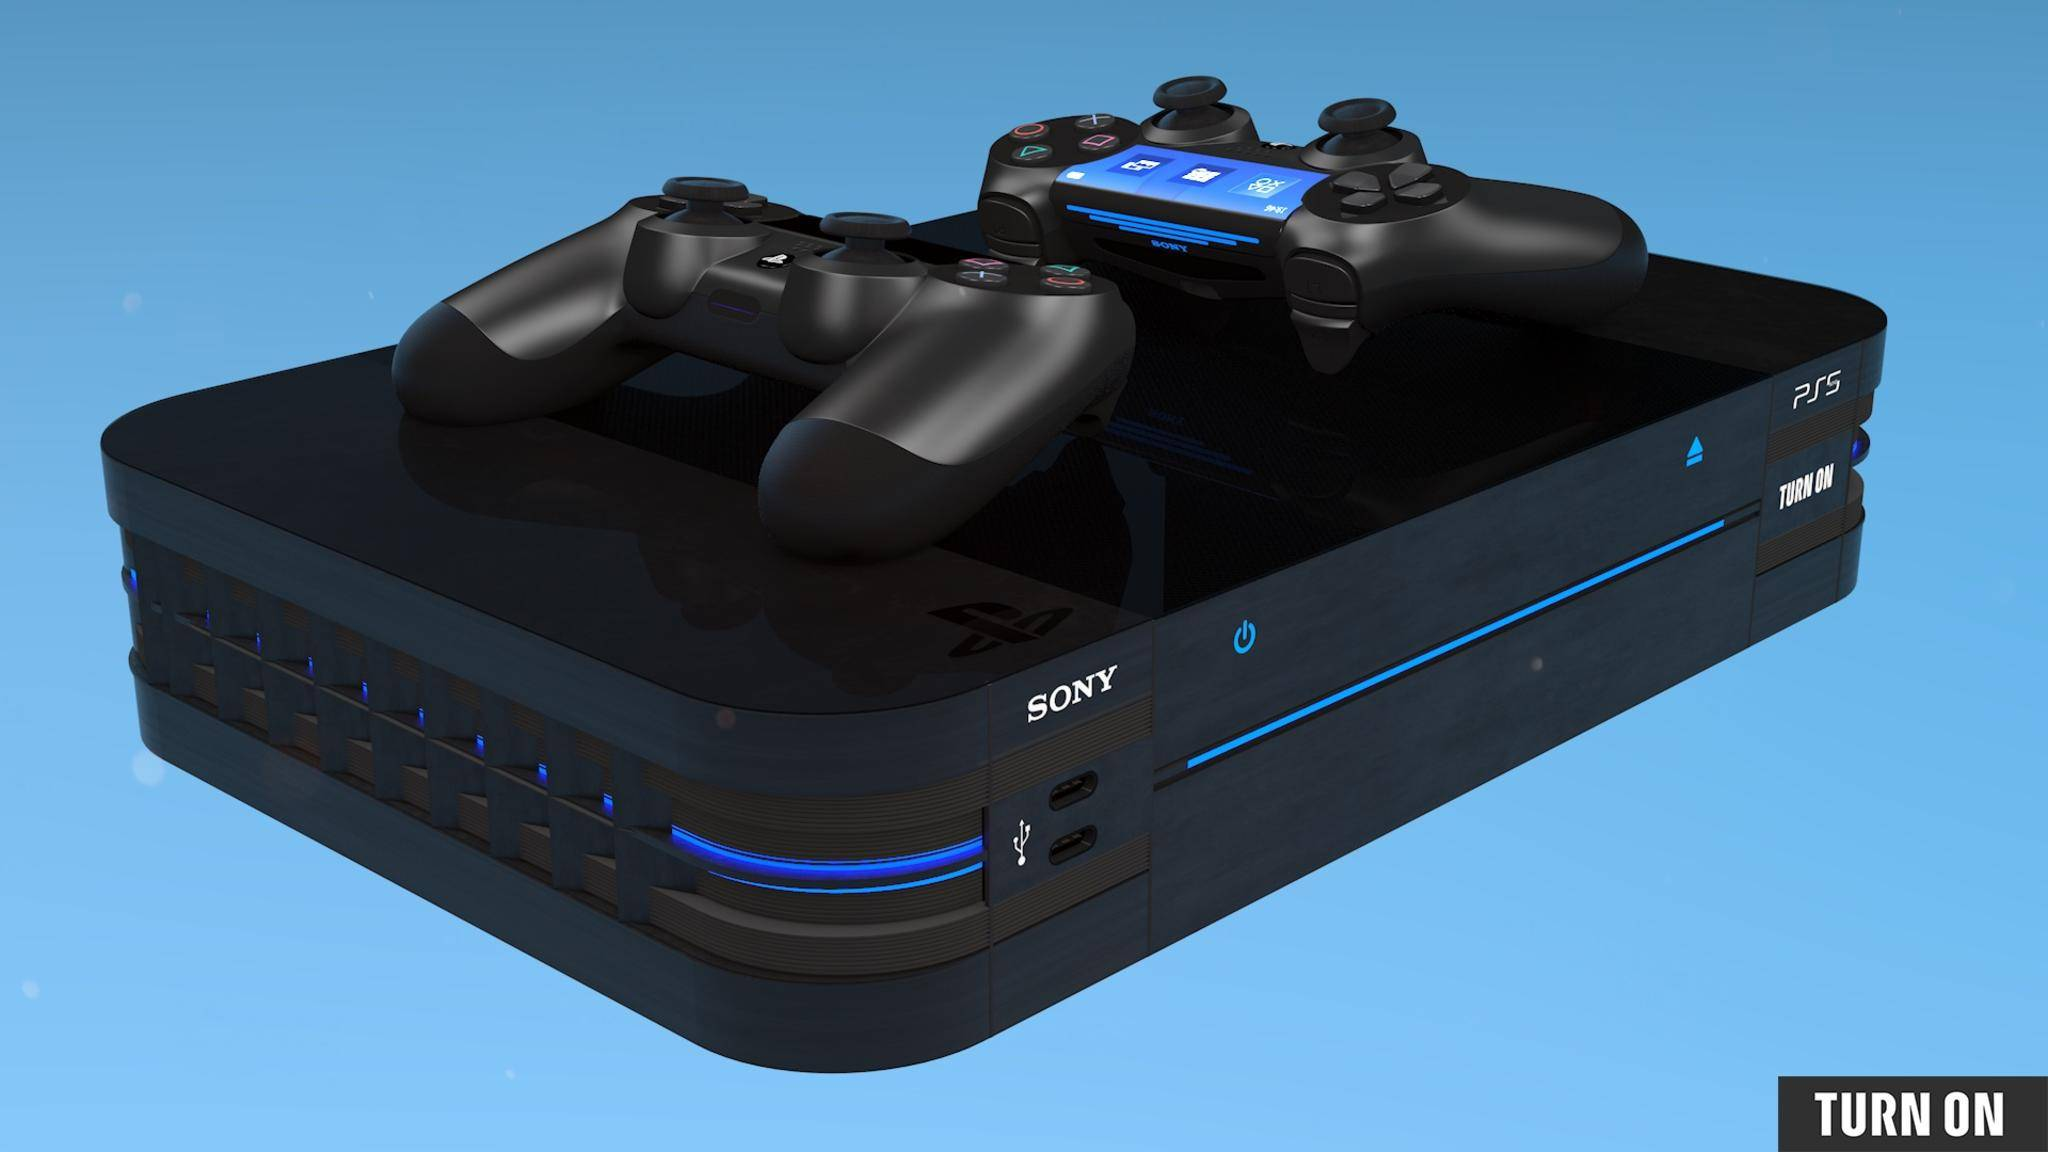 ps5-playstation-5-konzept-turn-on-konsole-main